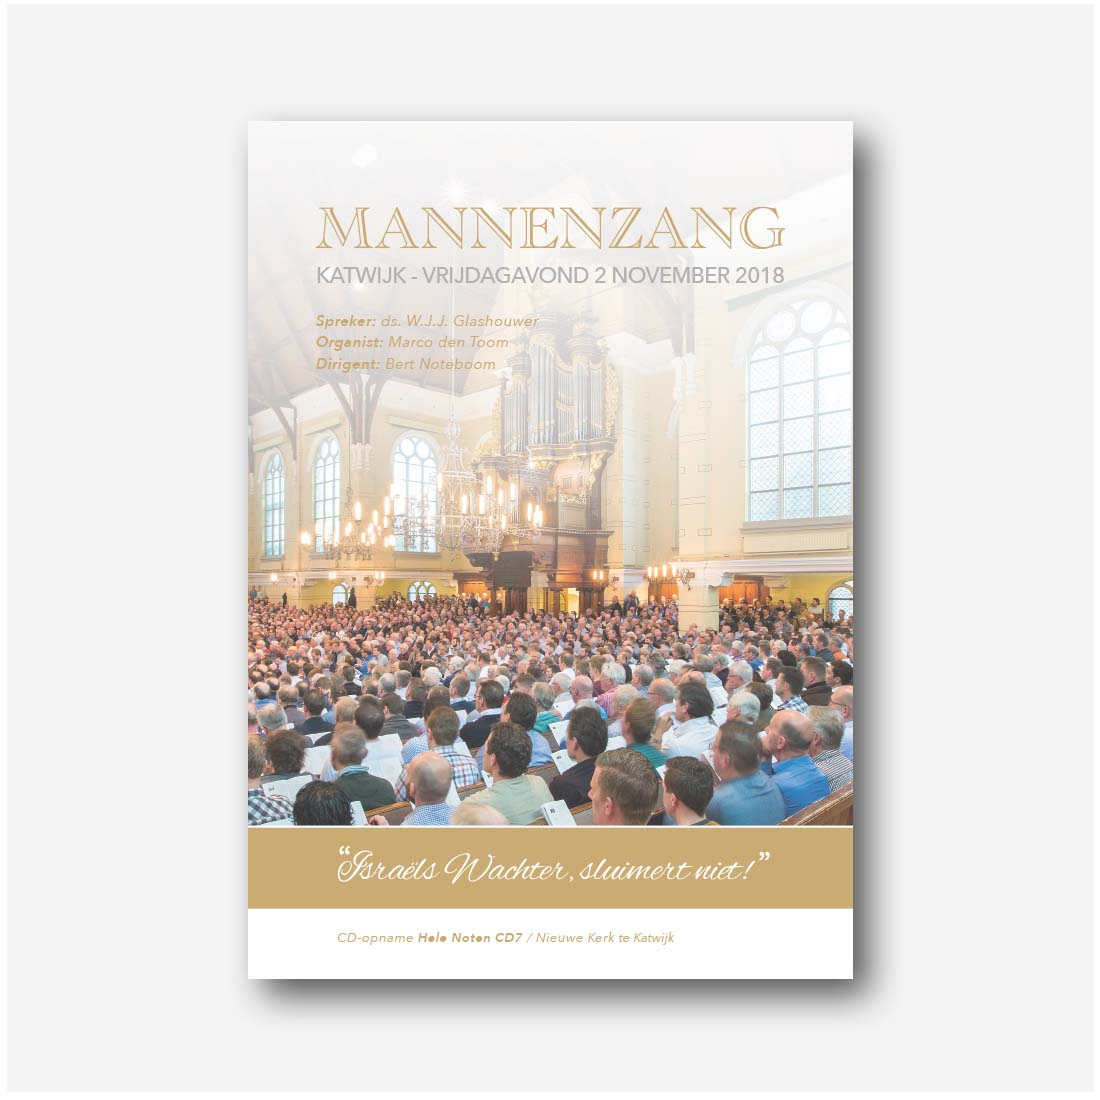 Mannenzang November 2018